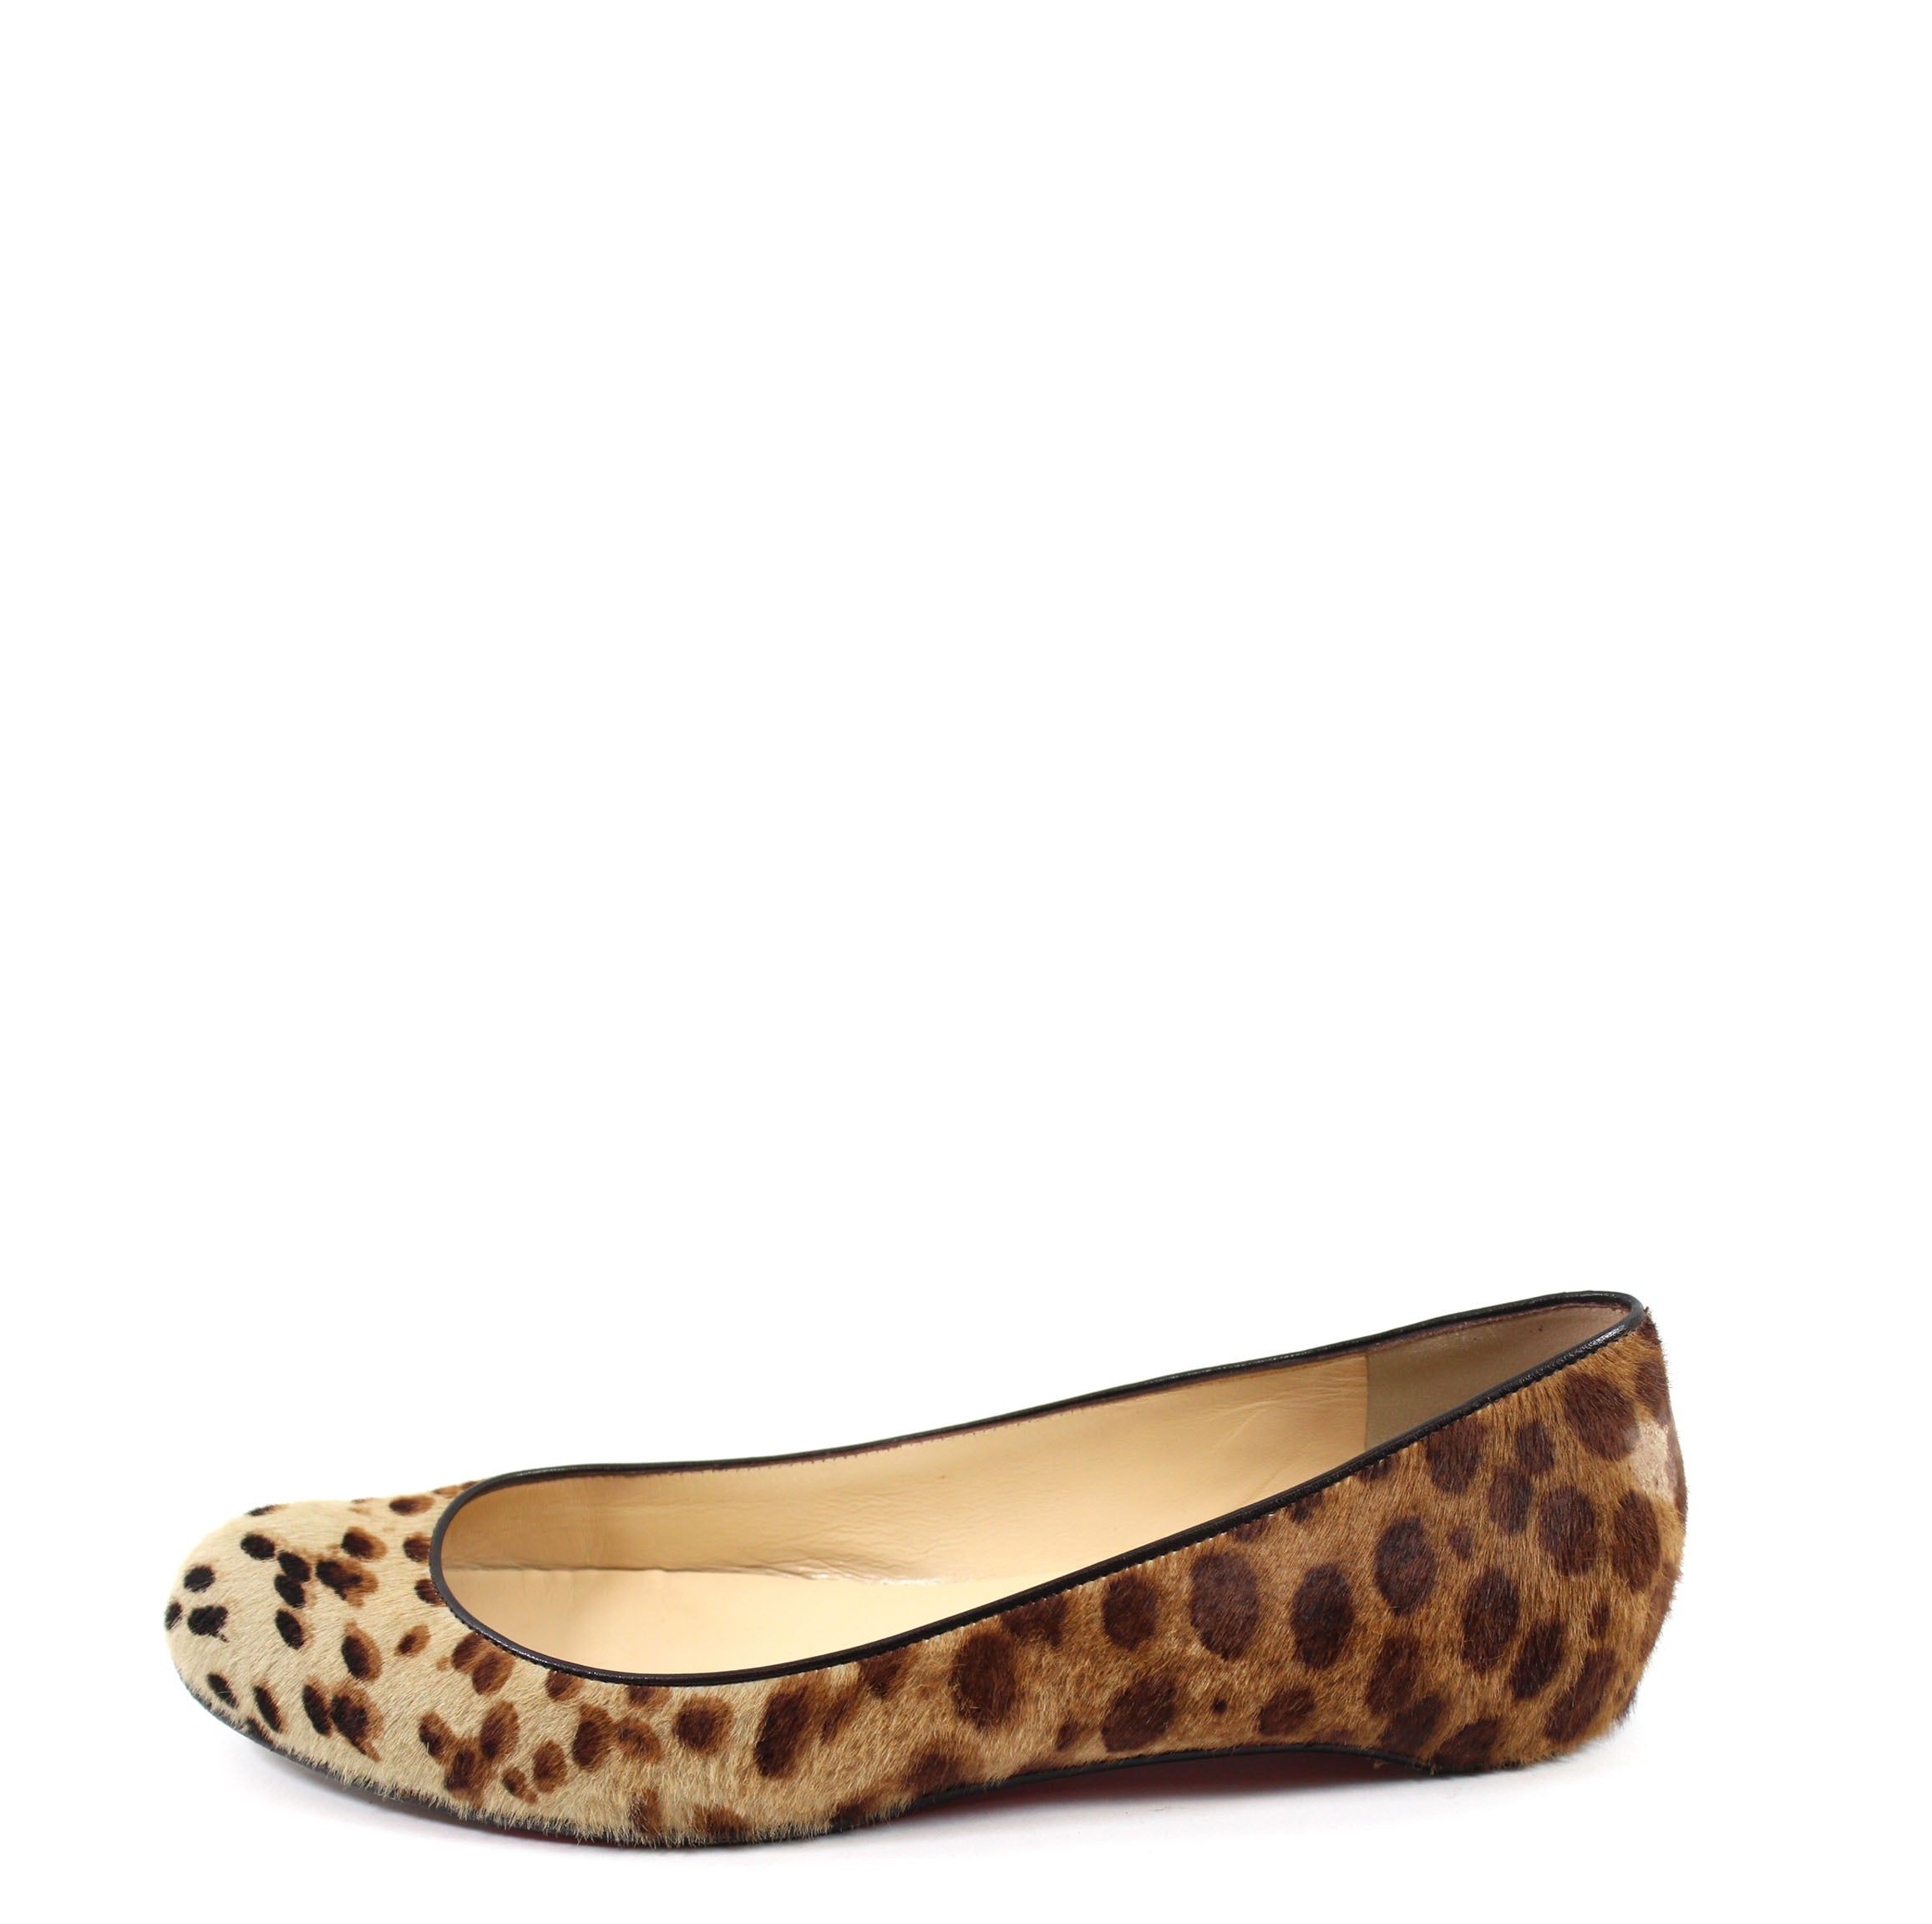 Christian Louboutin Leopard-patterned Calfhair Flats (Size 40.5)